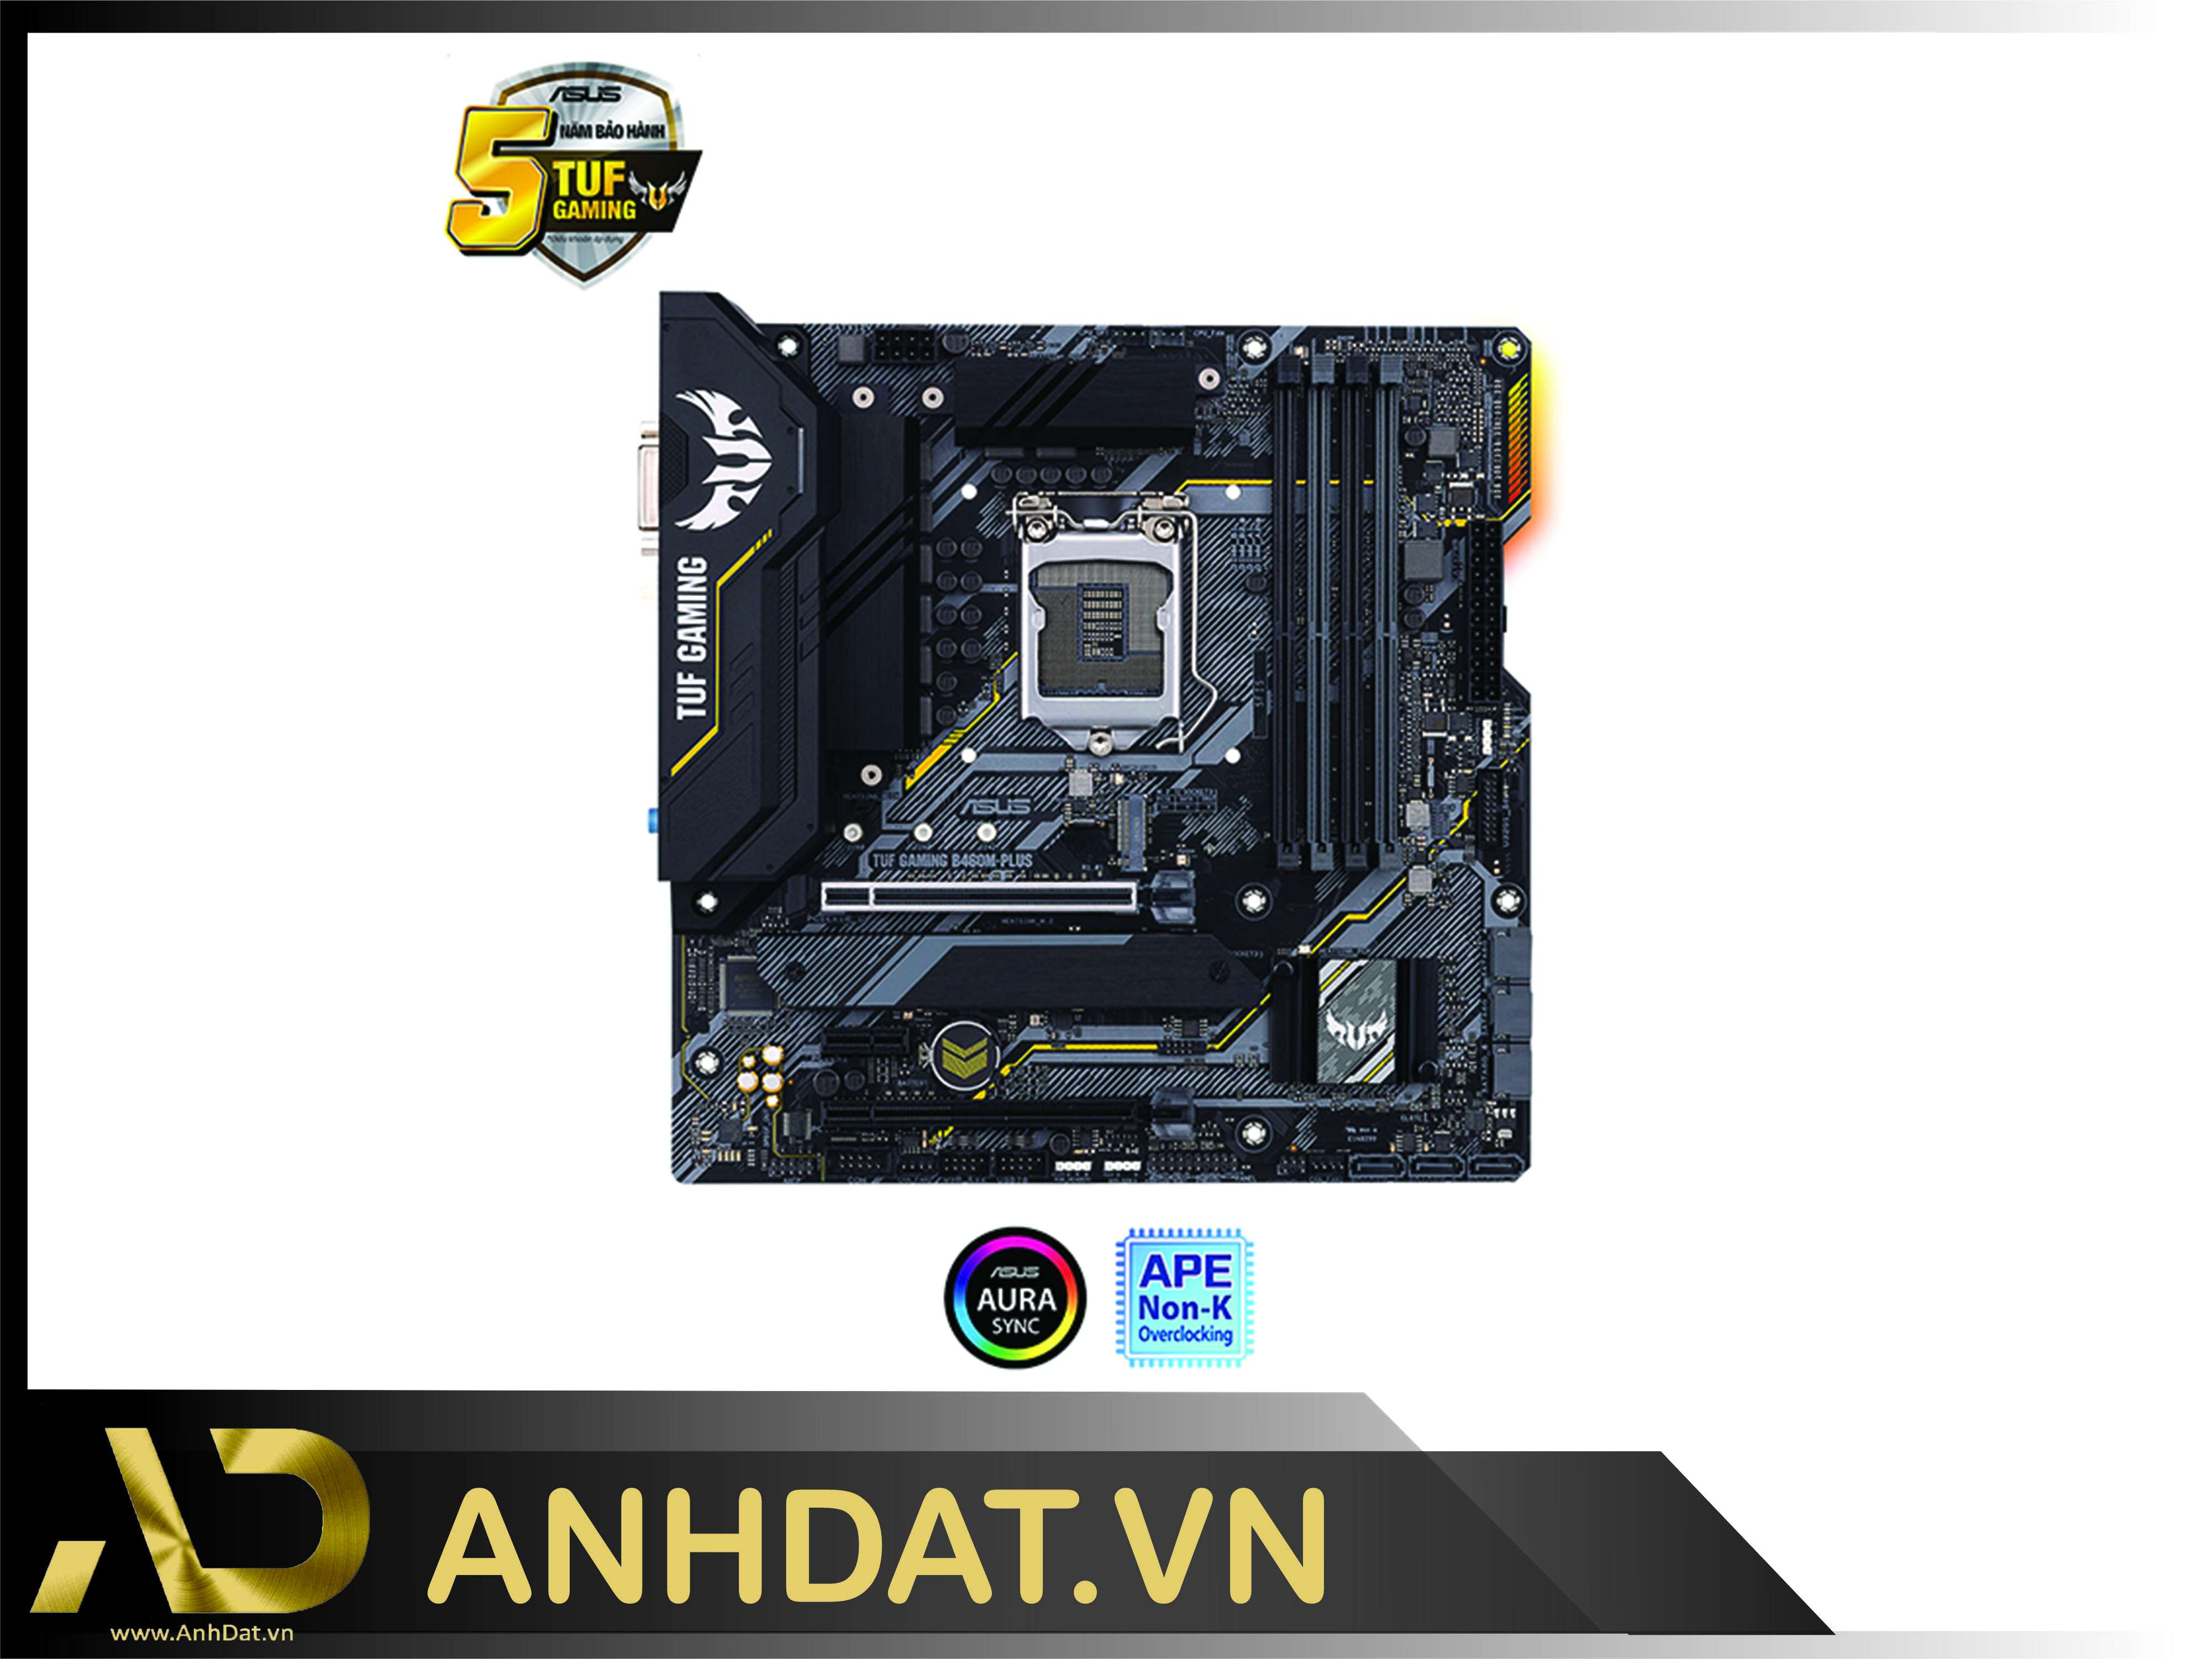 Mainboard ASUS TUF GAMING B460M-PLUS (Intel B460, Socket 1200, m-ATX, 4 khe Ram DDR4)